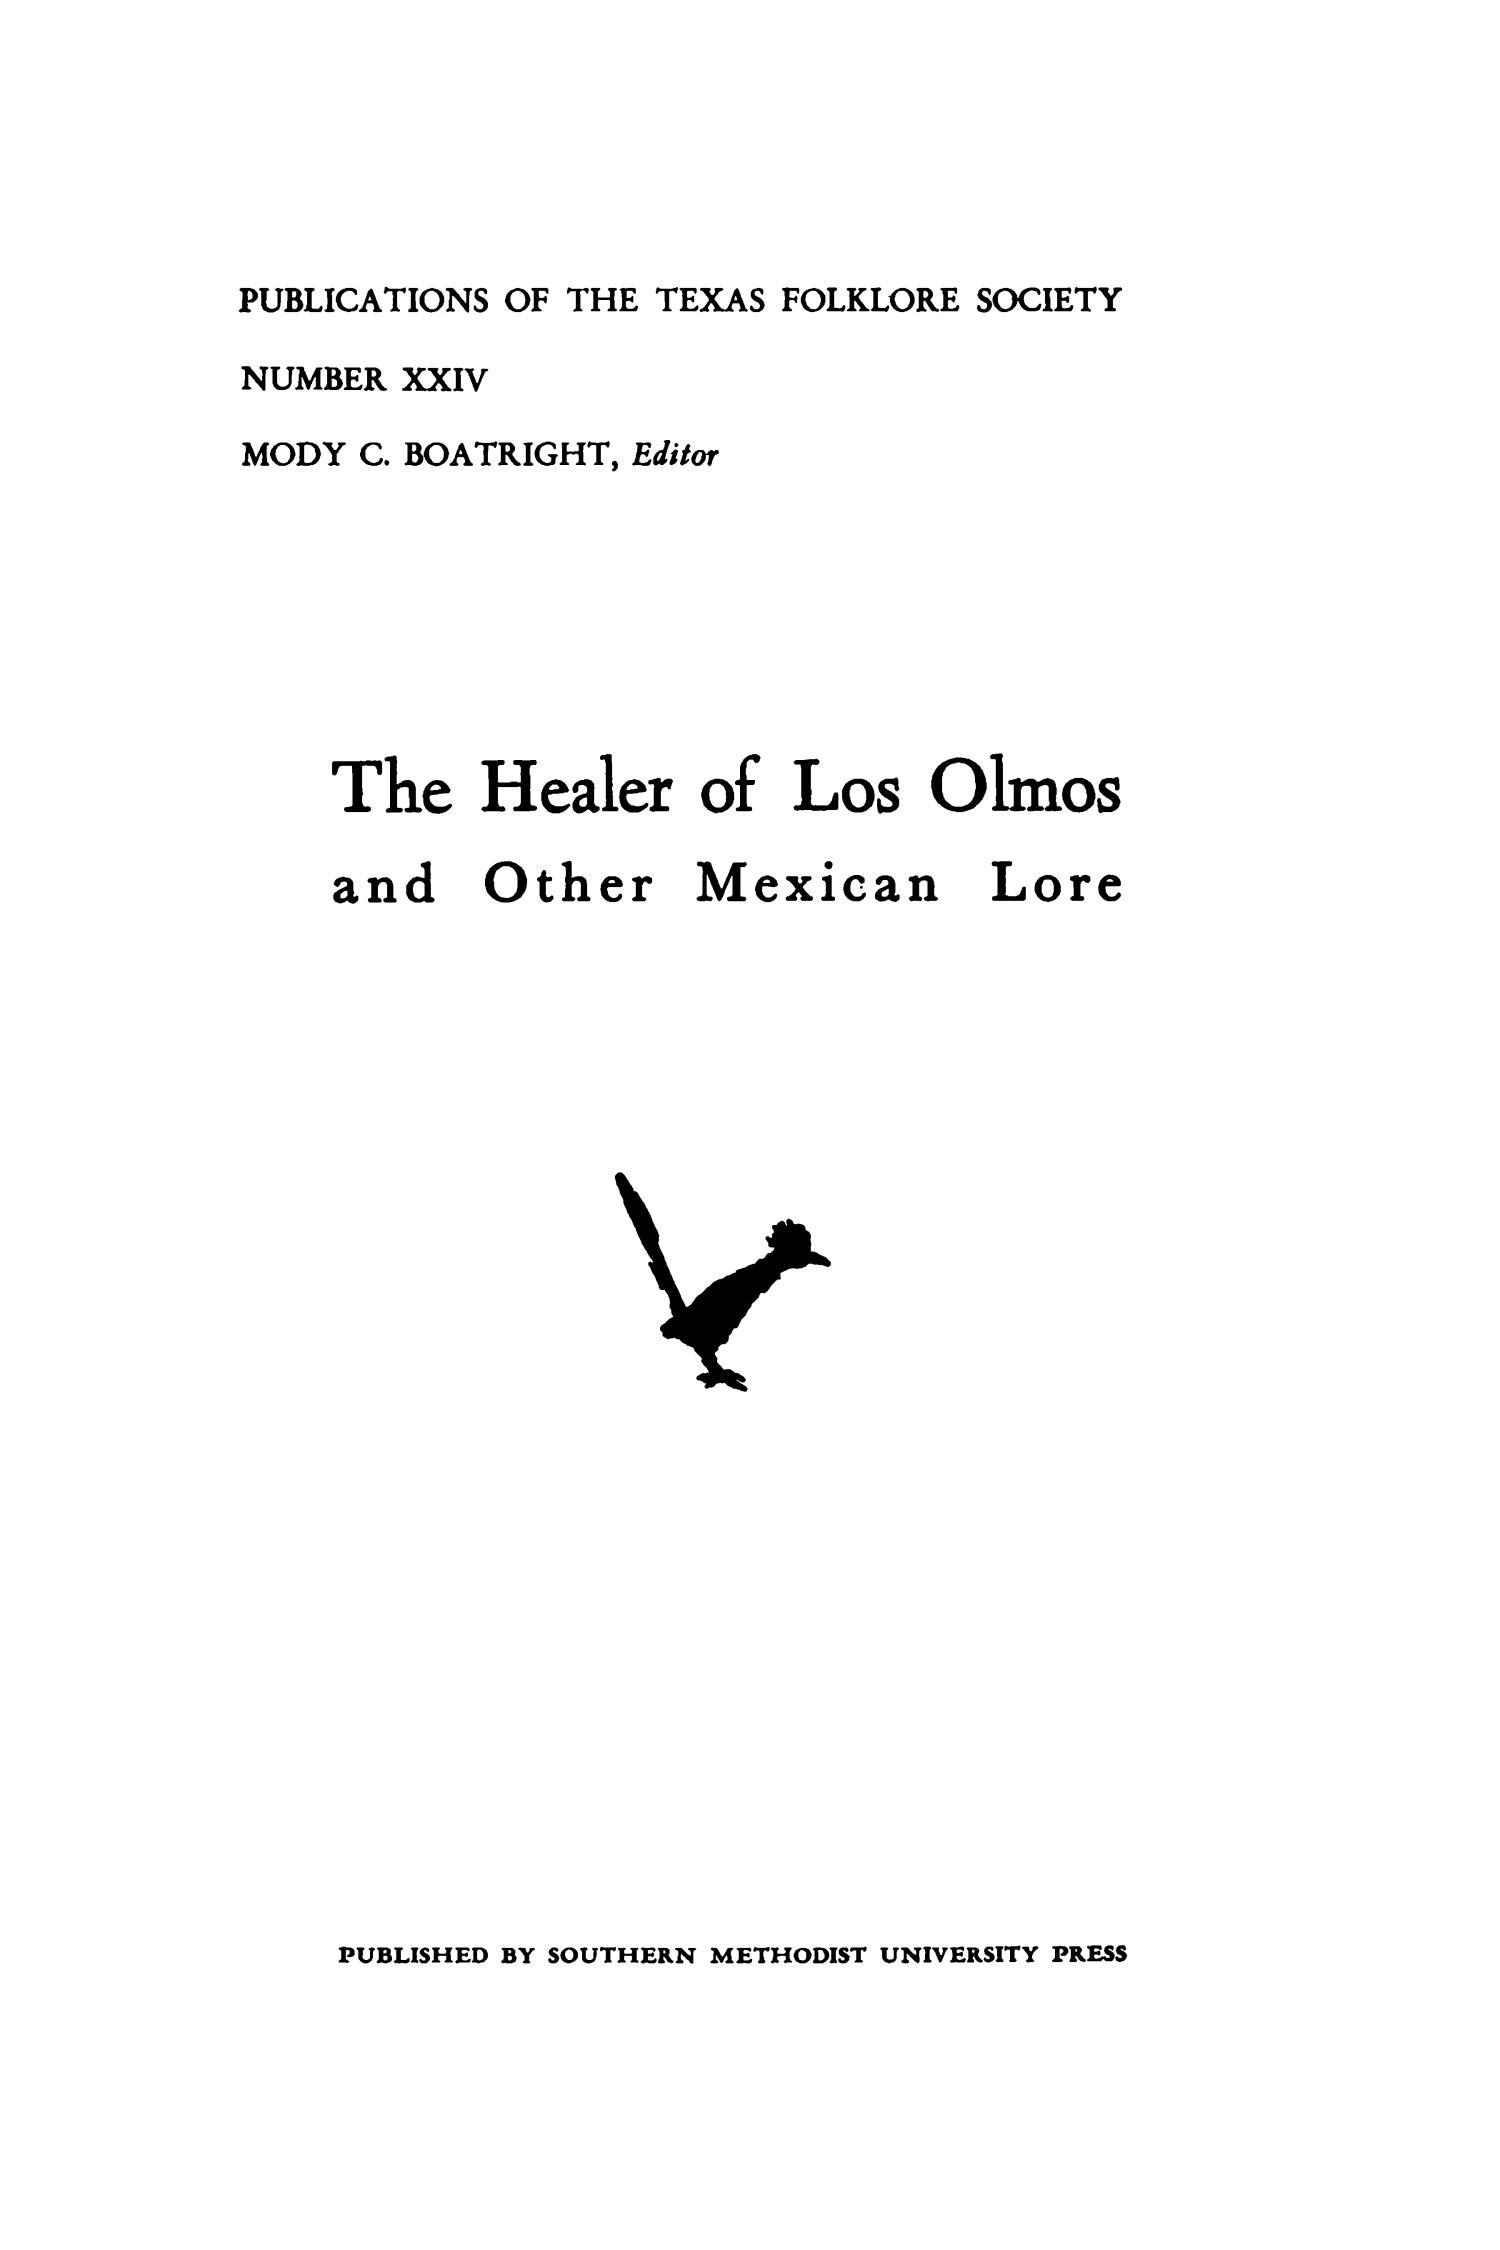 The Healer of Los Olmos and Other Mexican Lore                                                                                                      I